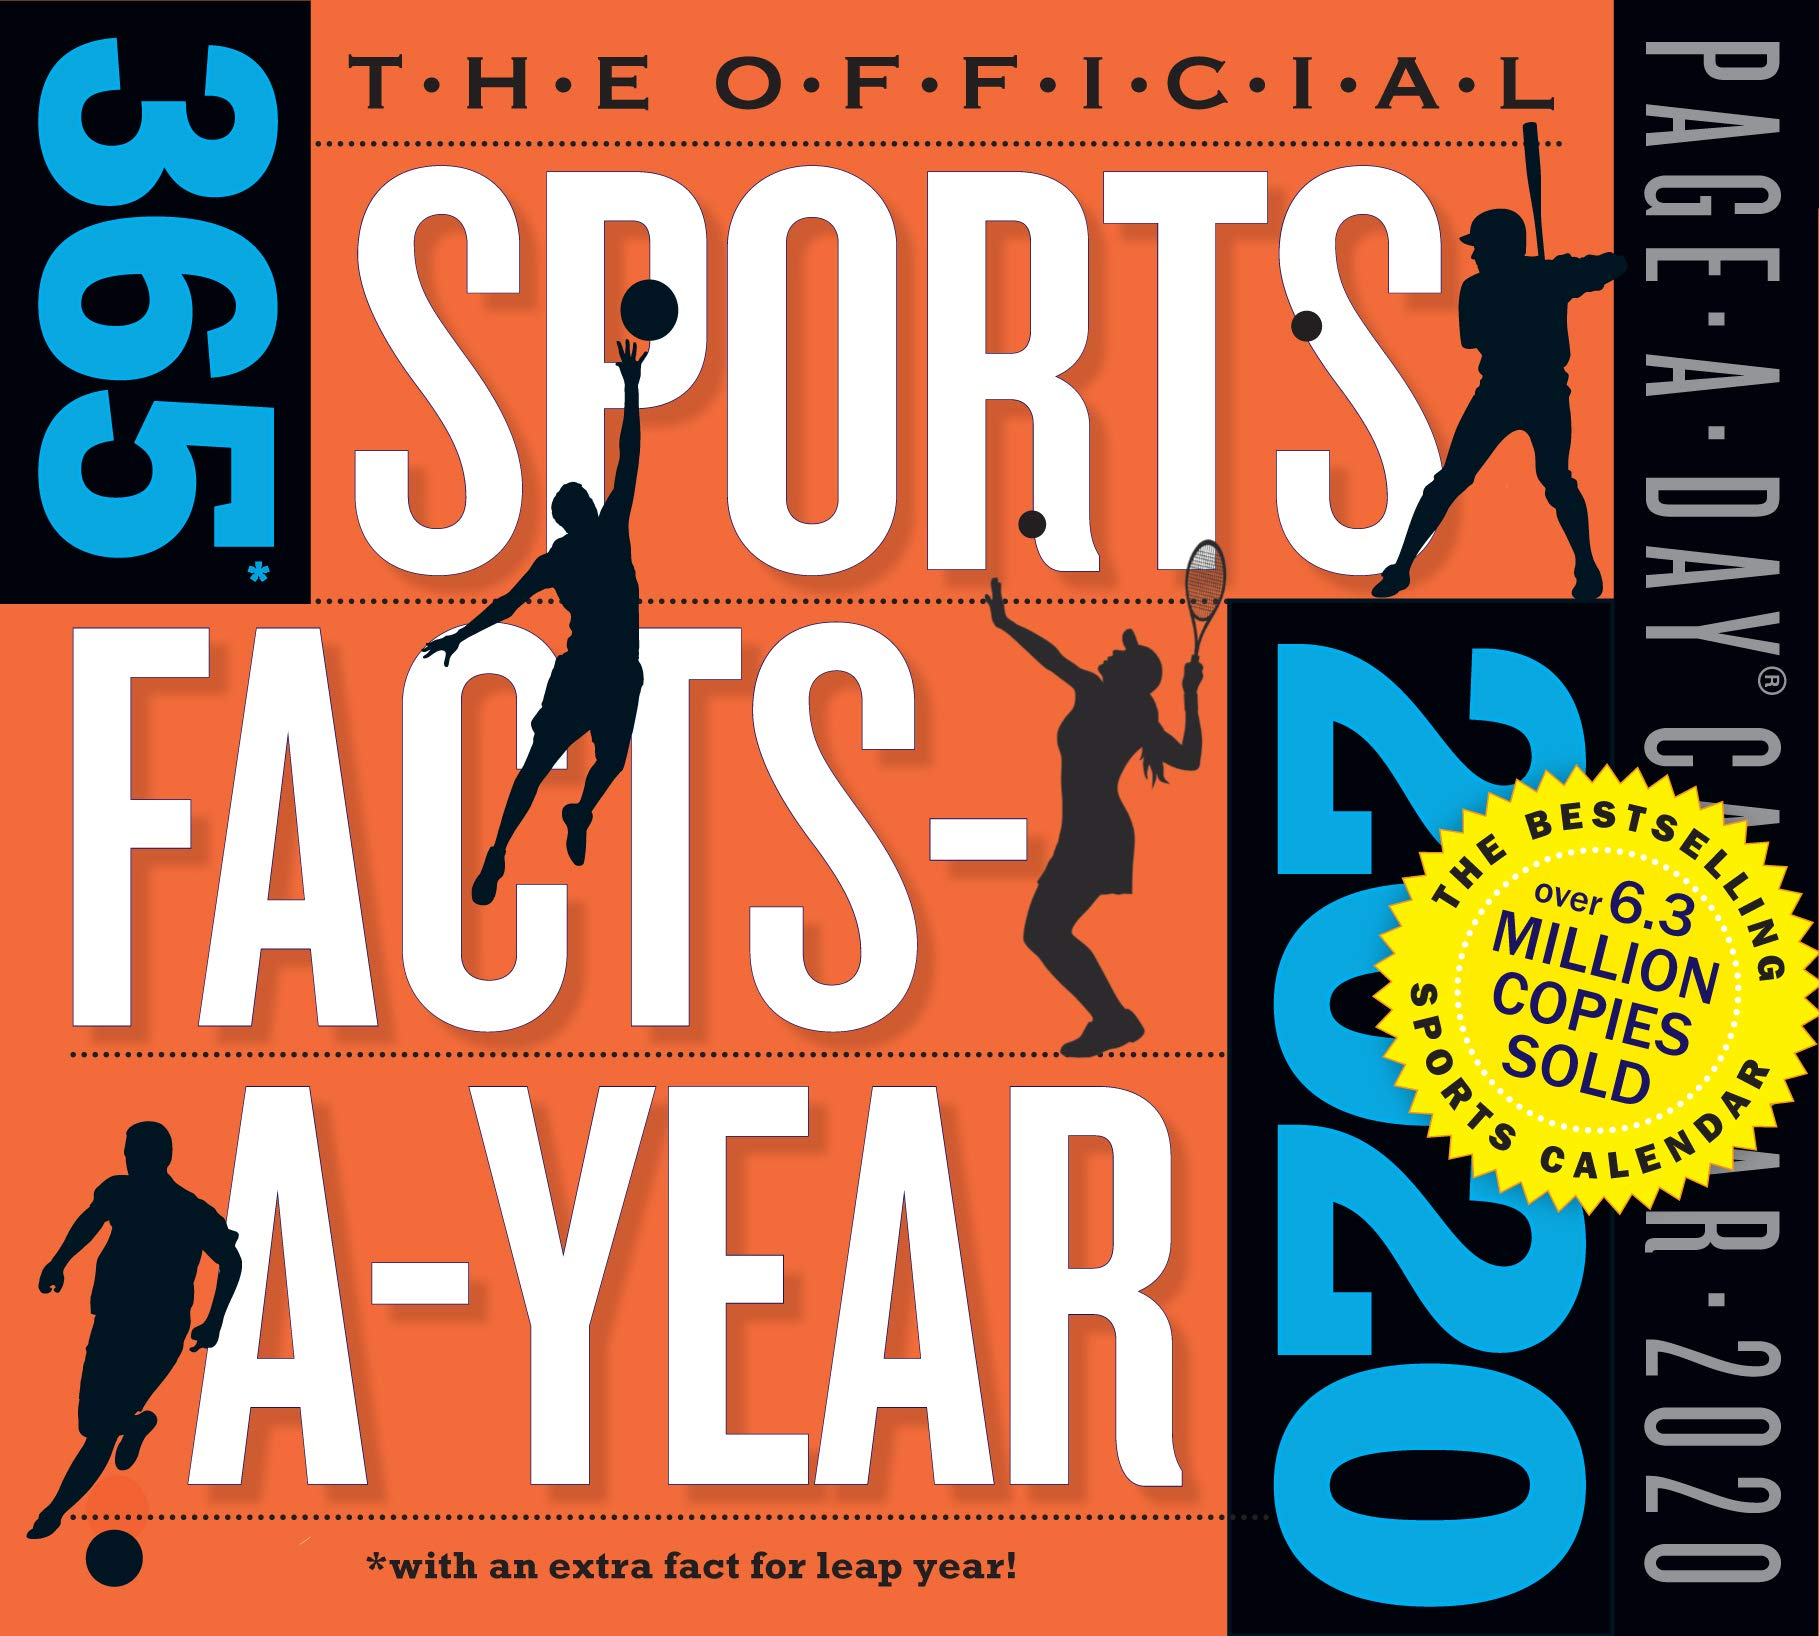 Sports Calendar 2020 Official 365 Sports Facts A Year Page A Day Calendar 2020: Workman